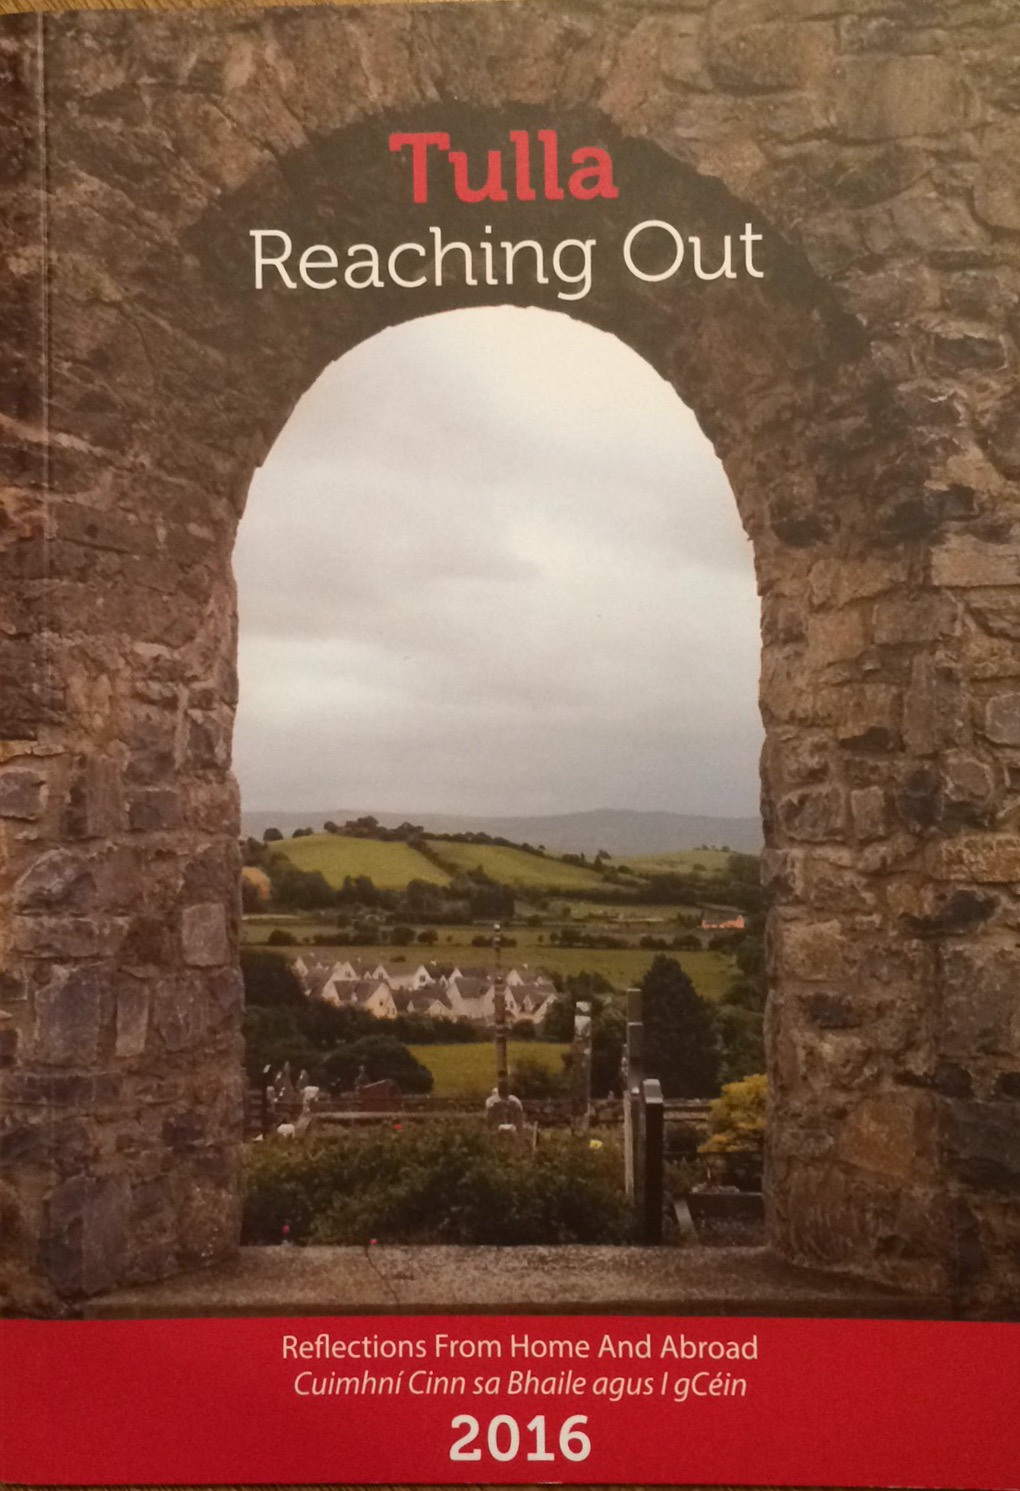 Tulla Reaching Out book cover